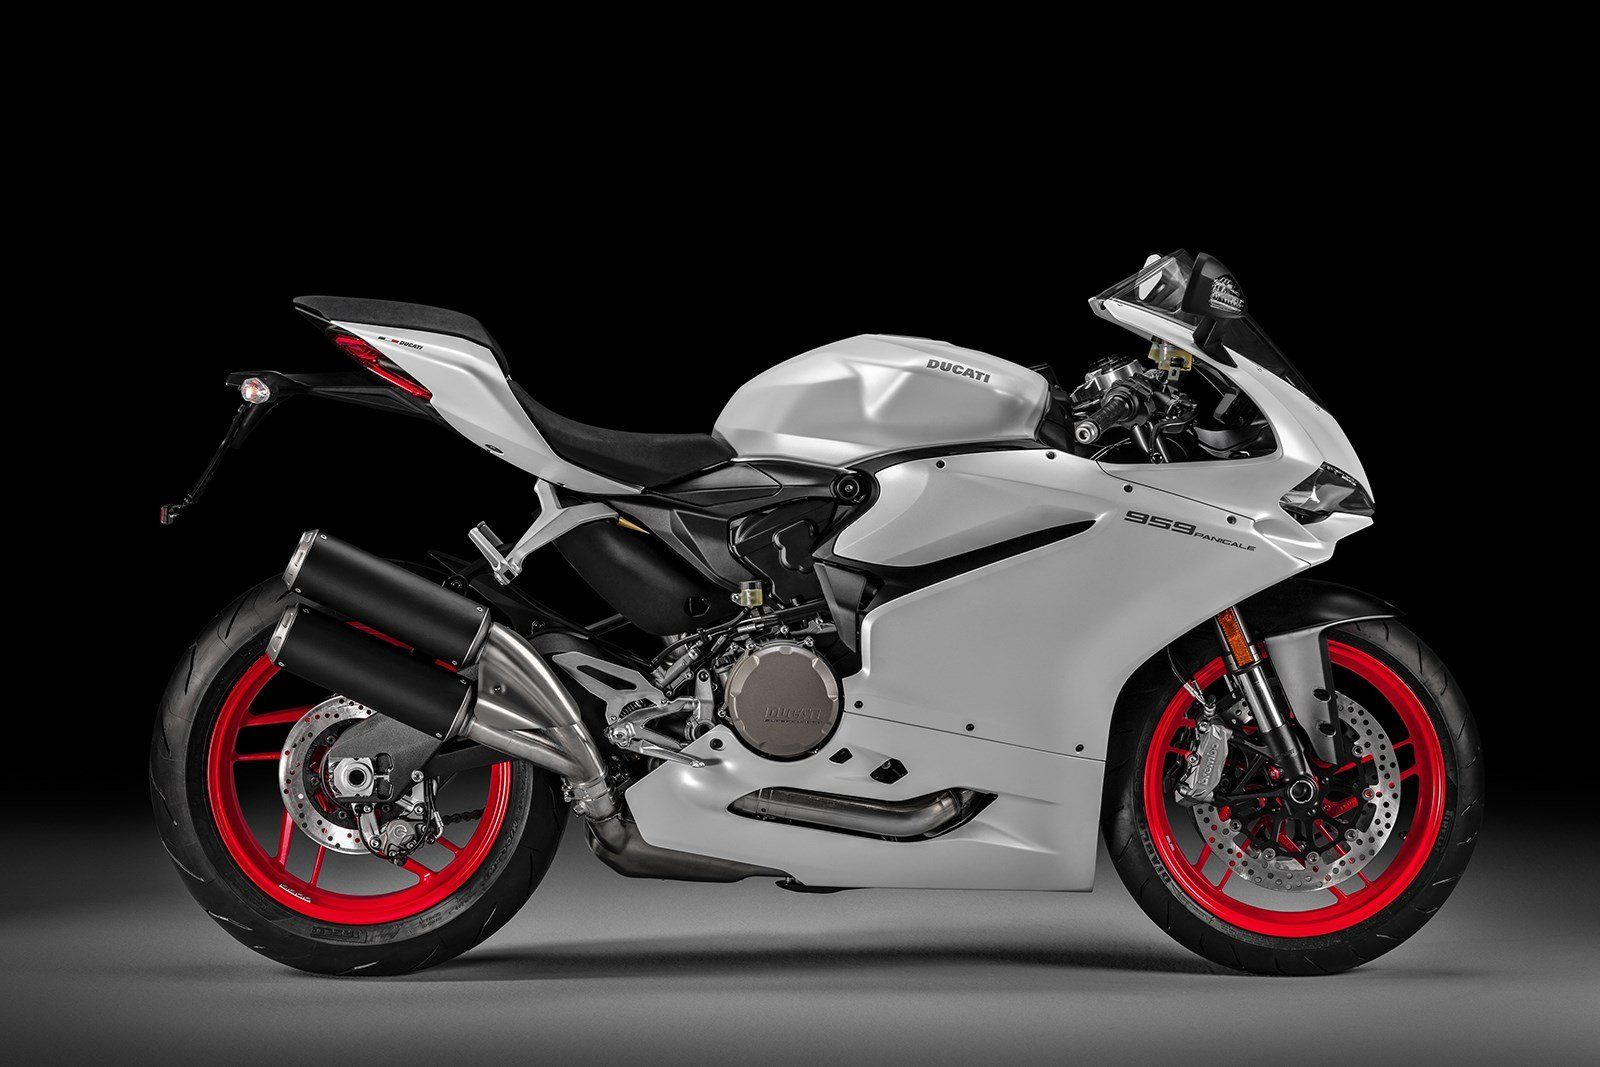 2019 Ducati Panigale 959 New Concept From Ducati 959 Panigale